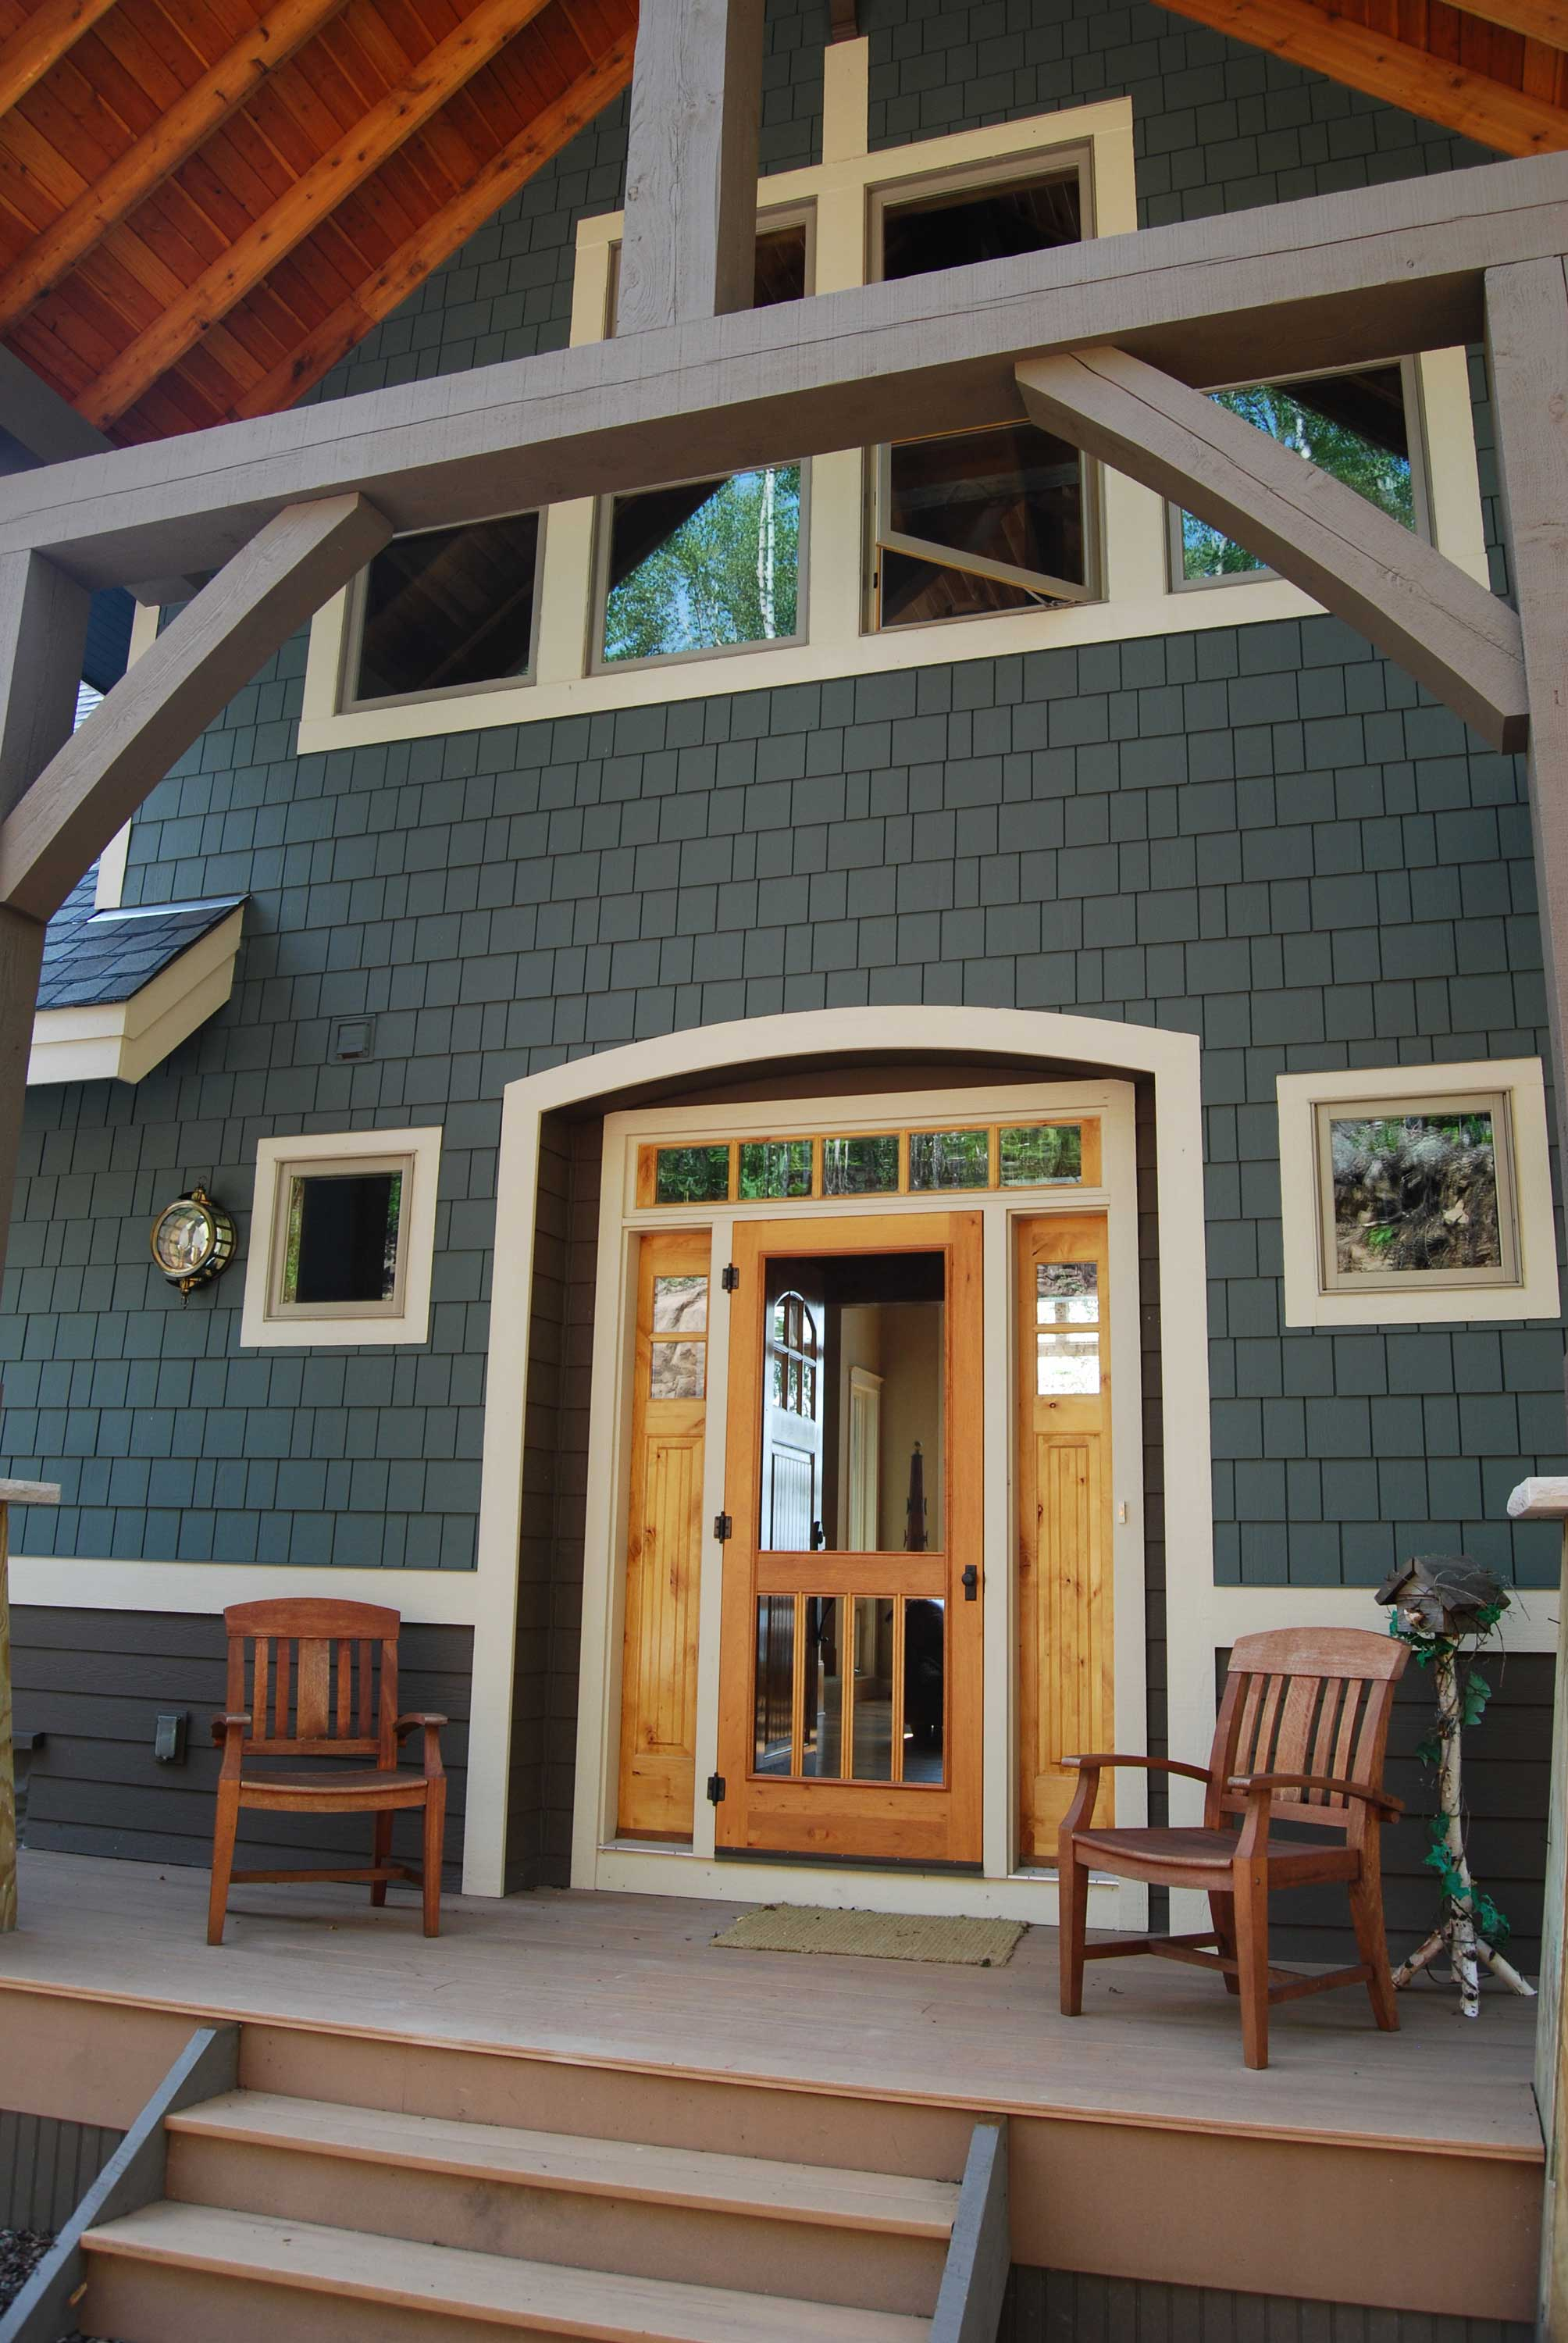 Example of transom window over main door entrance to this Craftsman home (Plan #146-2810).